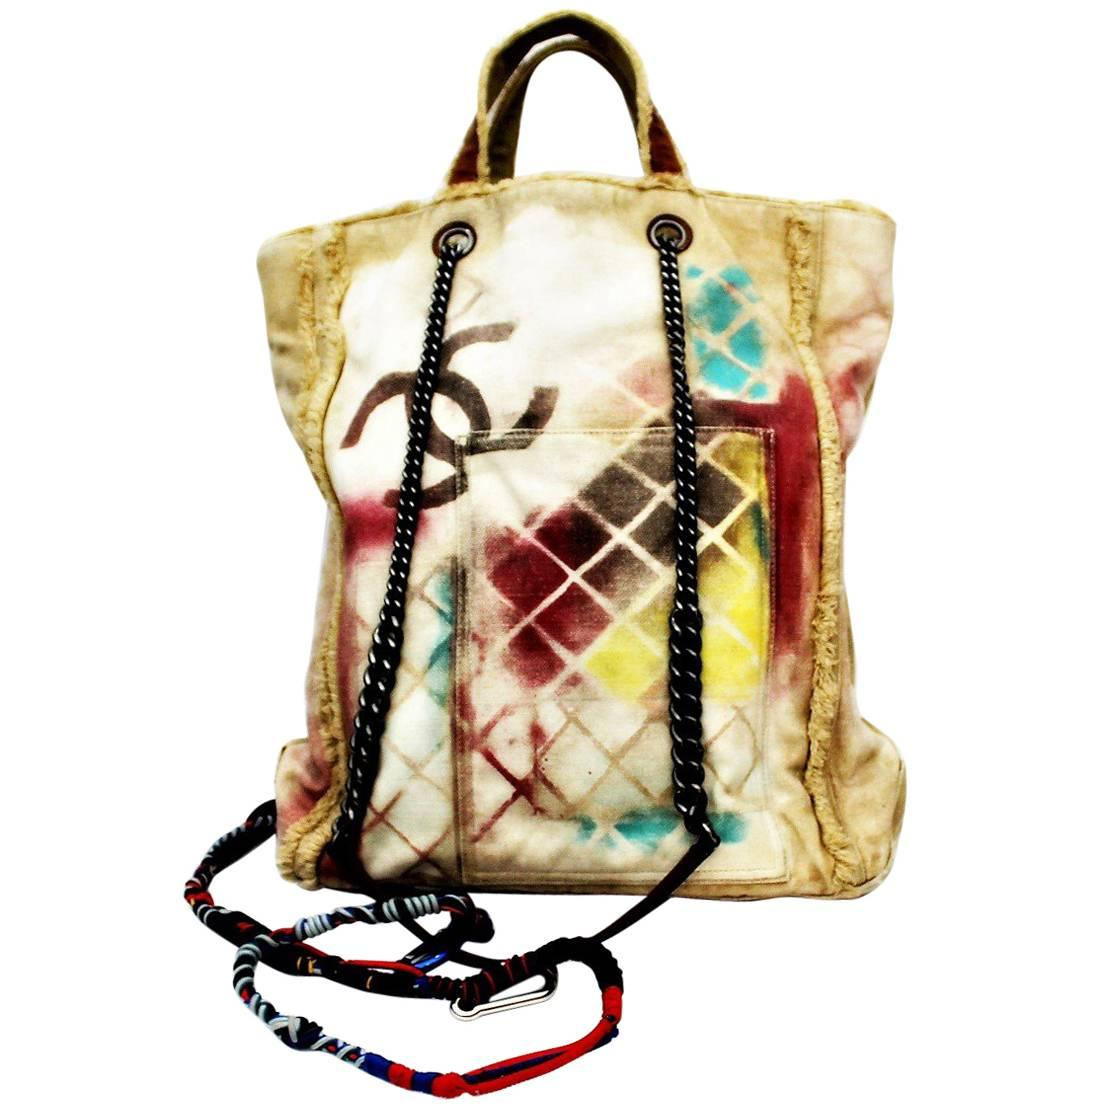 Chanel Graffiti Coco Cc Multicolor Quilted Painted Shoulder Beige Canvas Tote